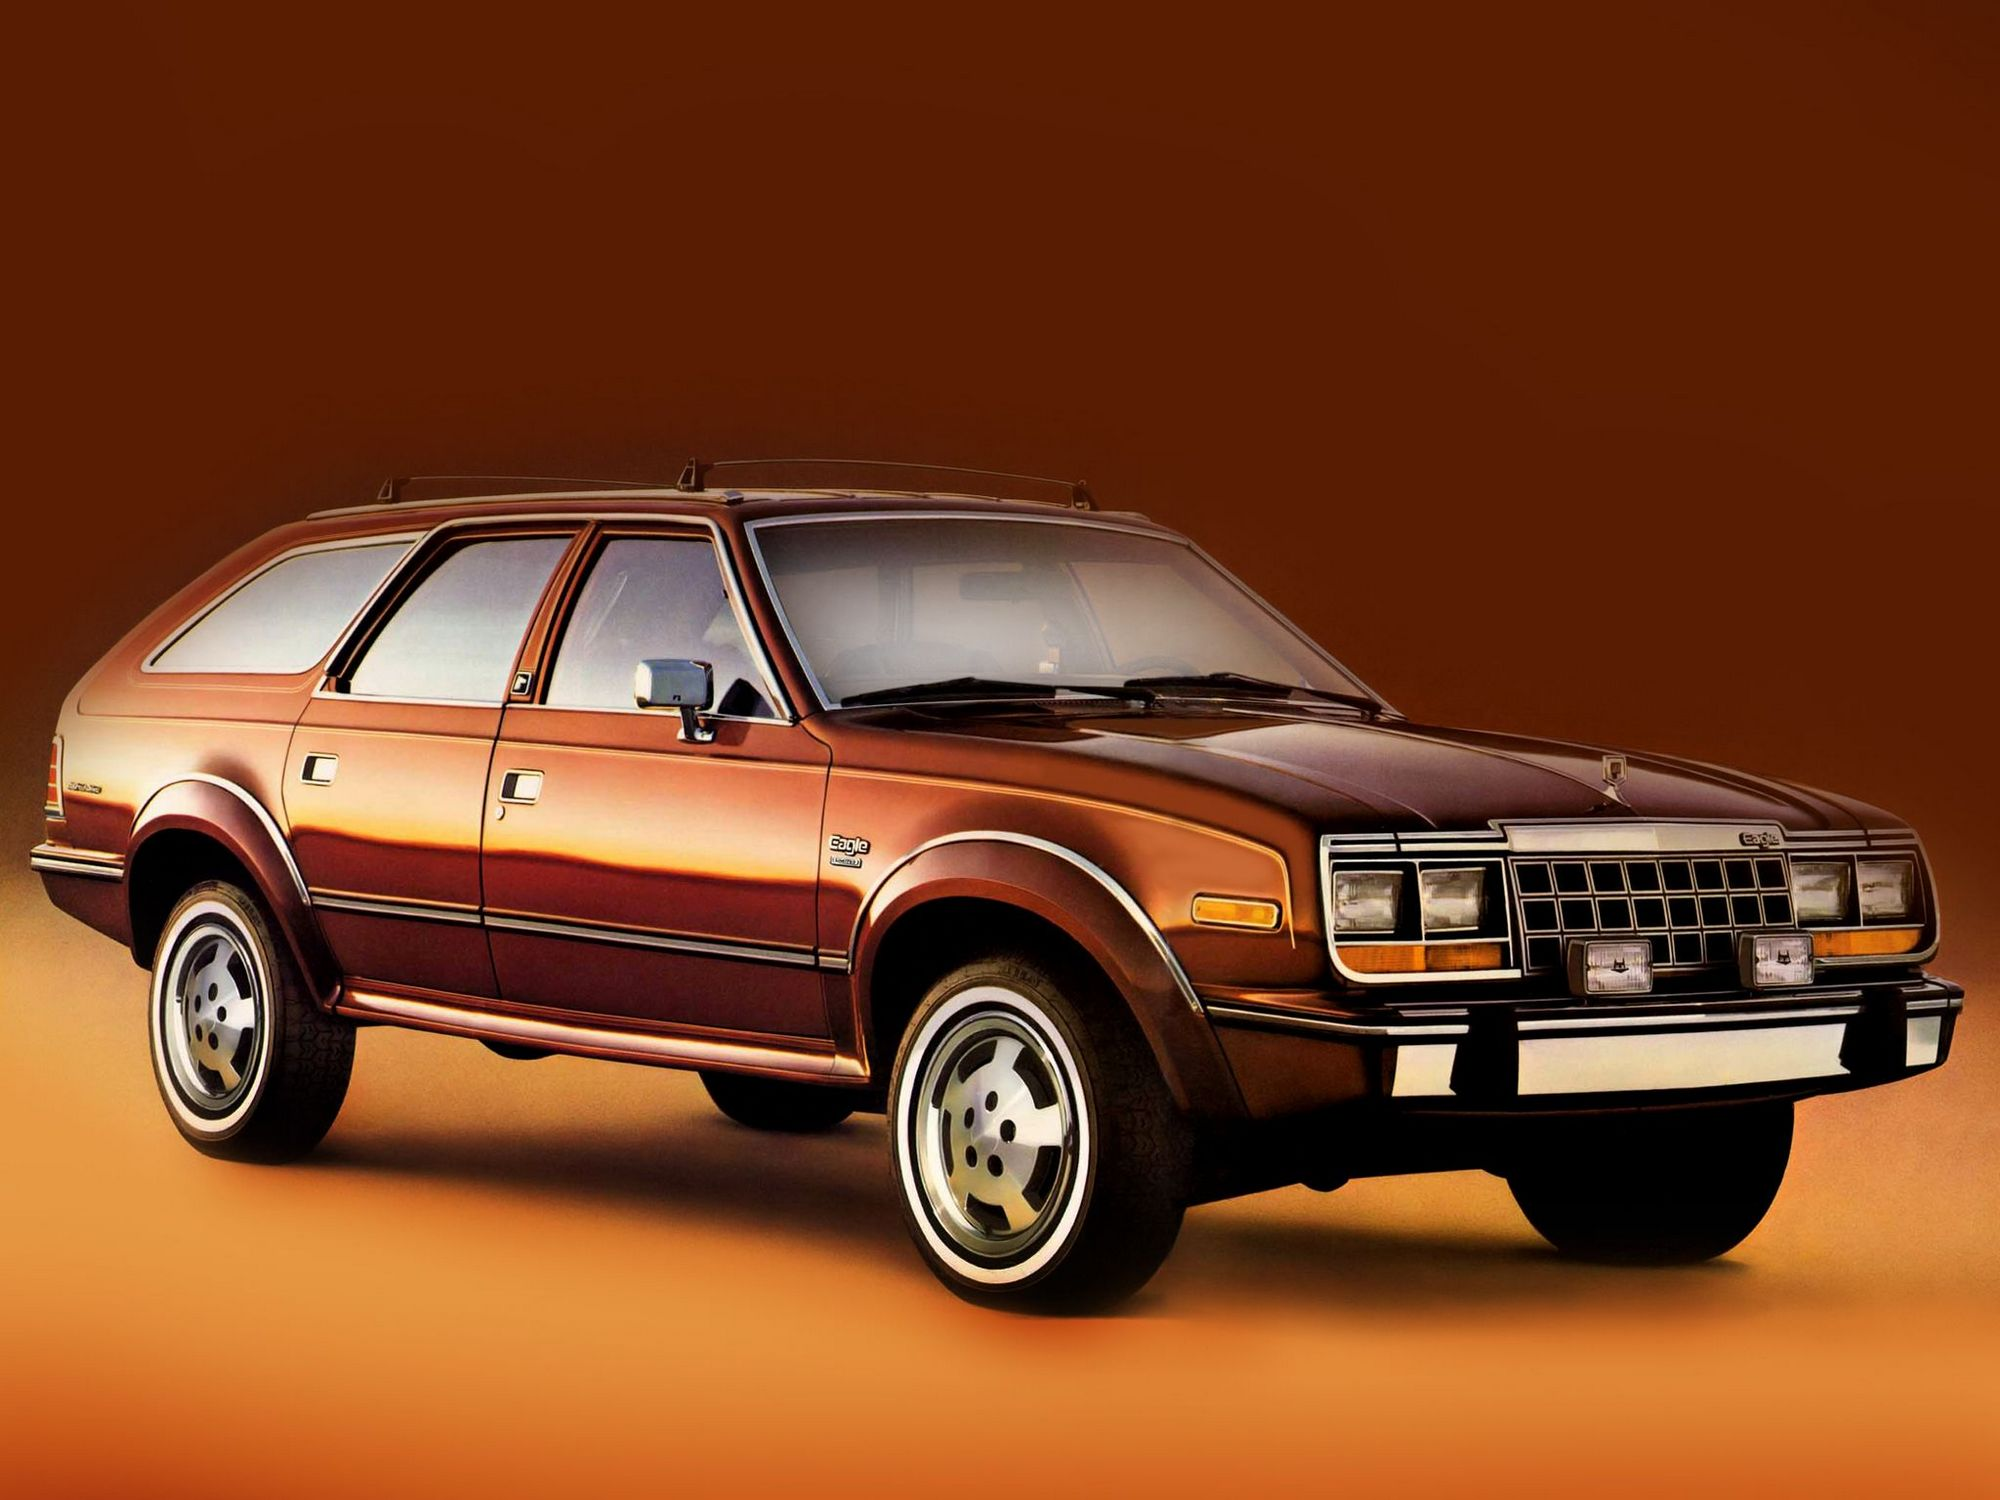 1982_AMC_Eagle_Wagon.jpg